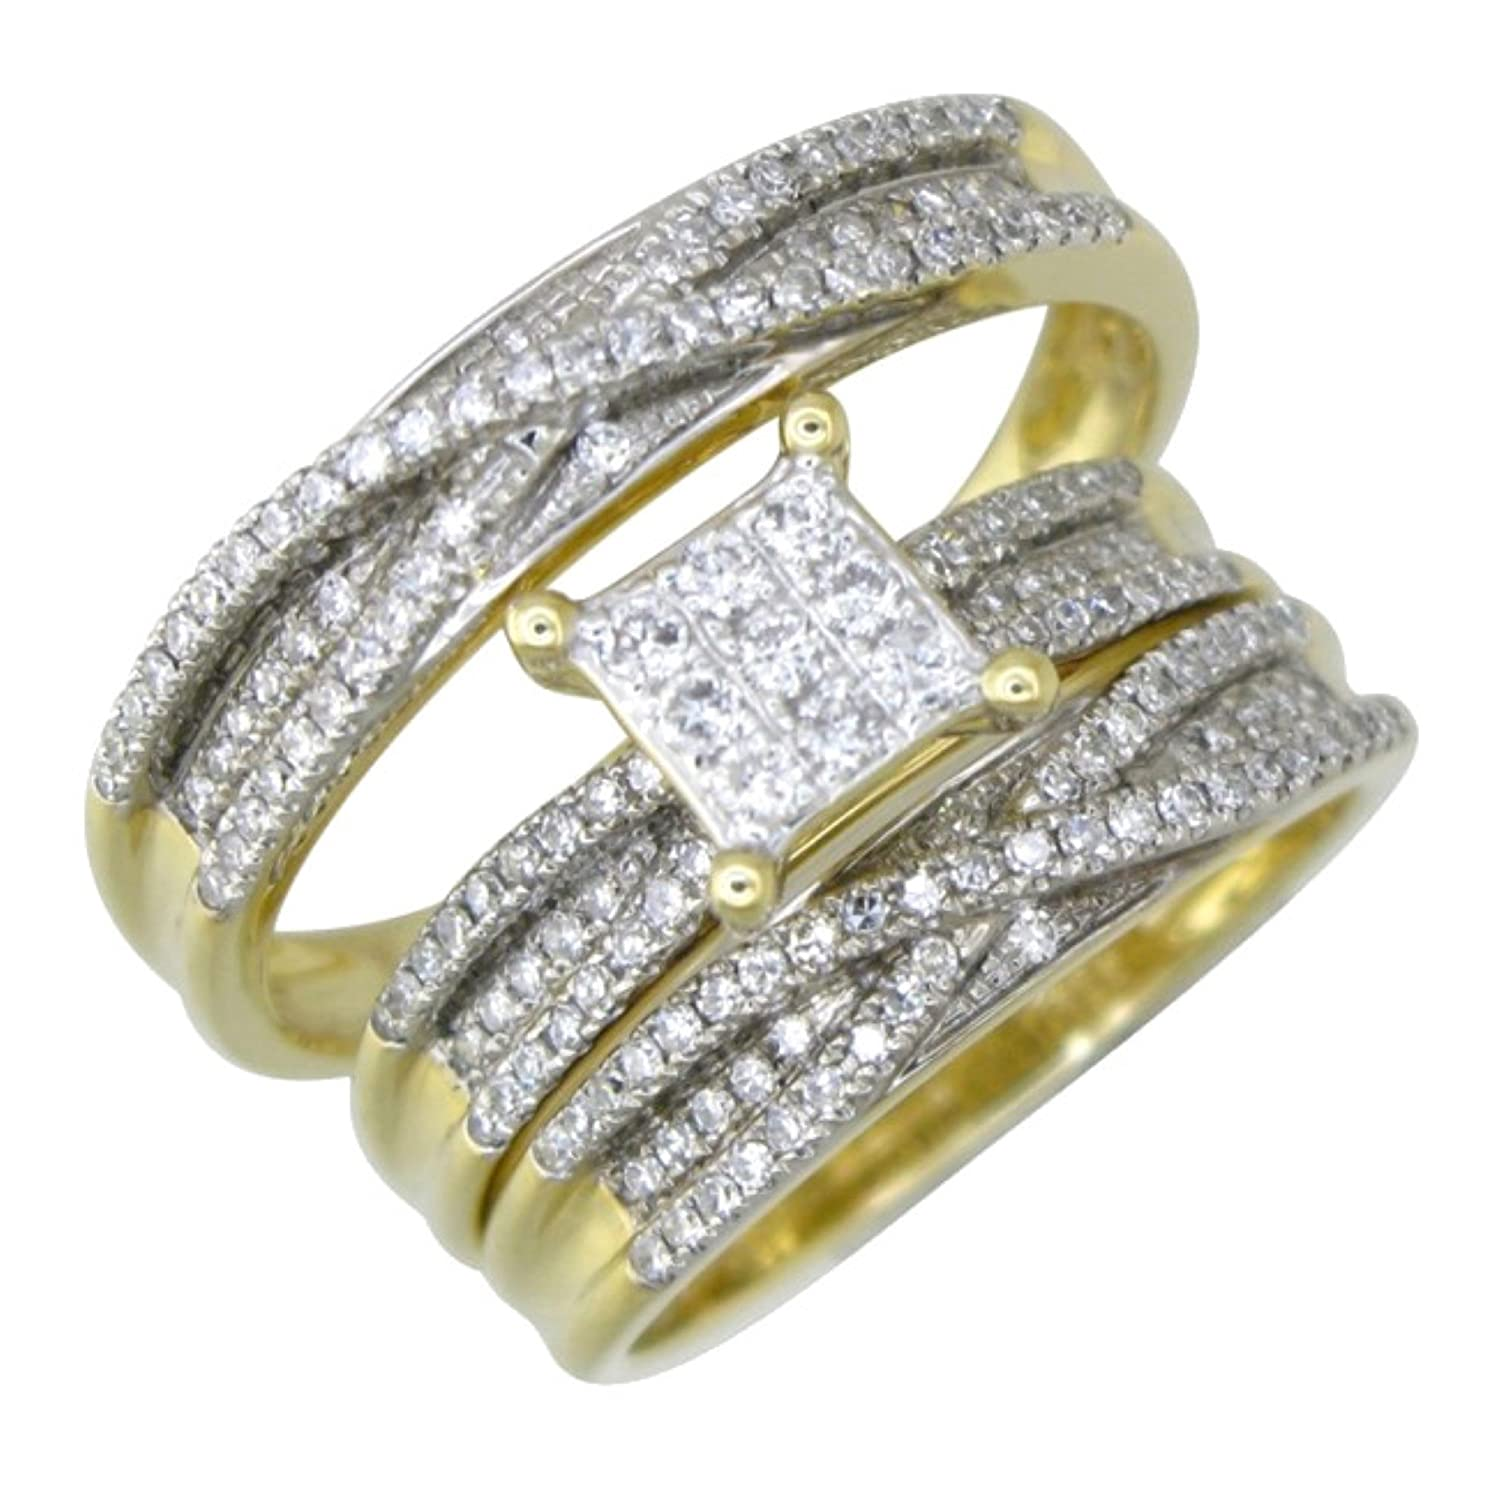 Matching Wedding Rings For Bride And Groom.Amazon Com Midwest Jewellery 14k Gold Bridal Wedding Ring Set His